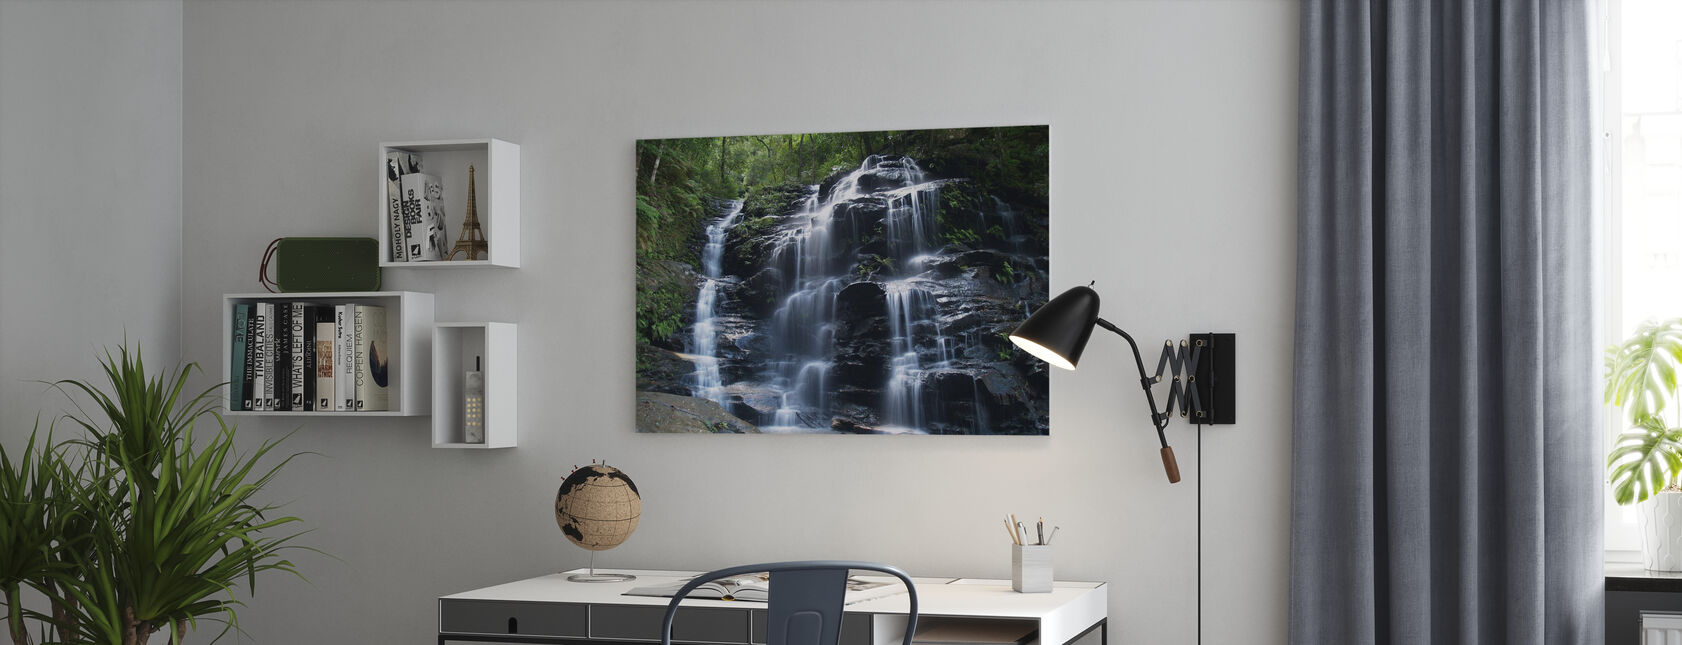 Amazon Waterfall - Canvas print - Office